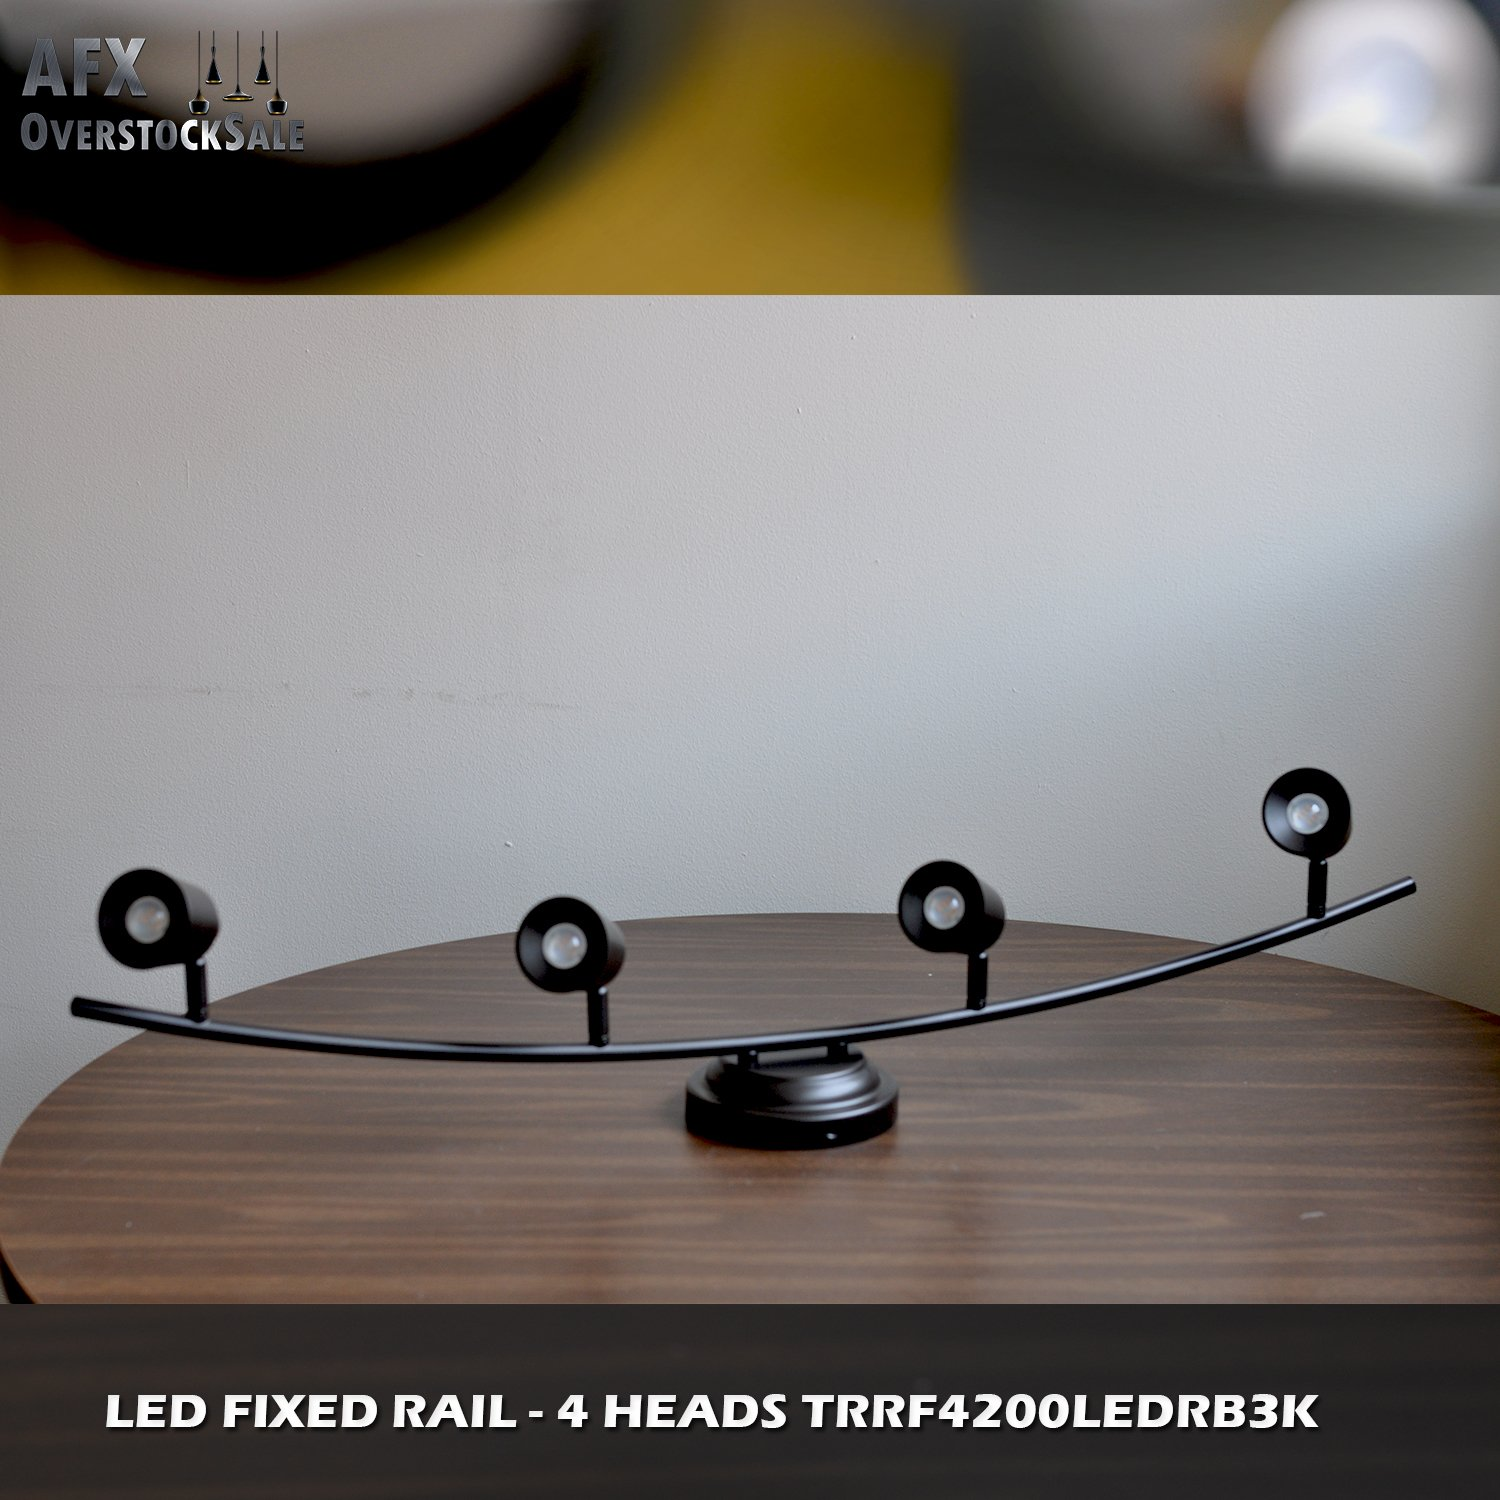 AFX Lighting TRRF4200LEDRB3K Frosted Acrylic LED Fixed Track Light Fixture, Oil Rubbed Bronze by Lighting by AFX